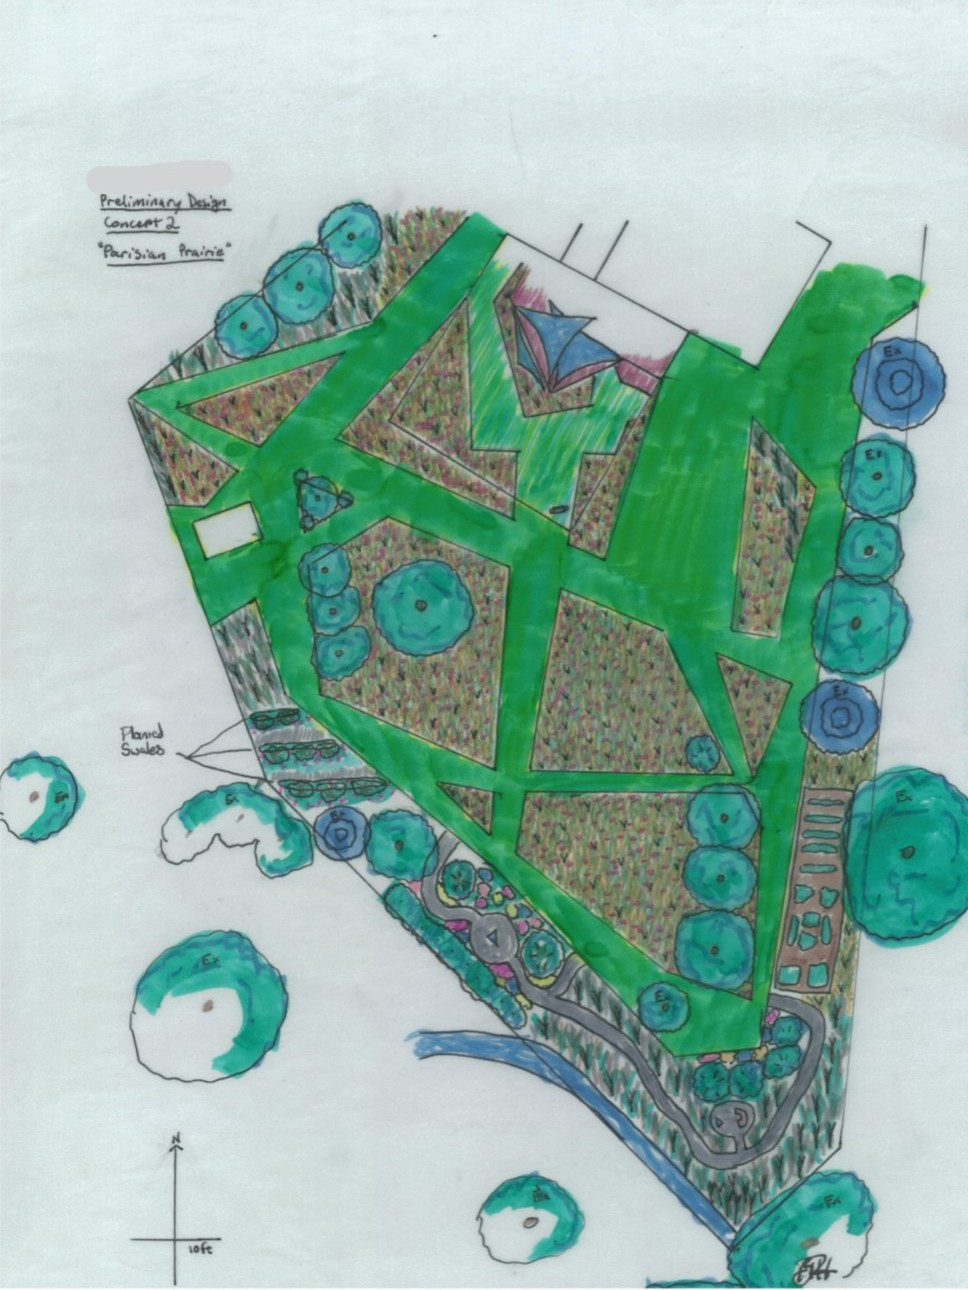 Ecological Landscaping - Permaculture Concept